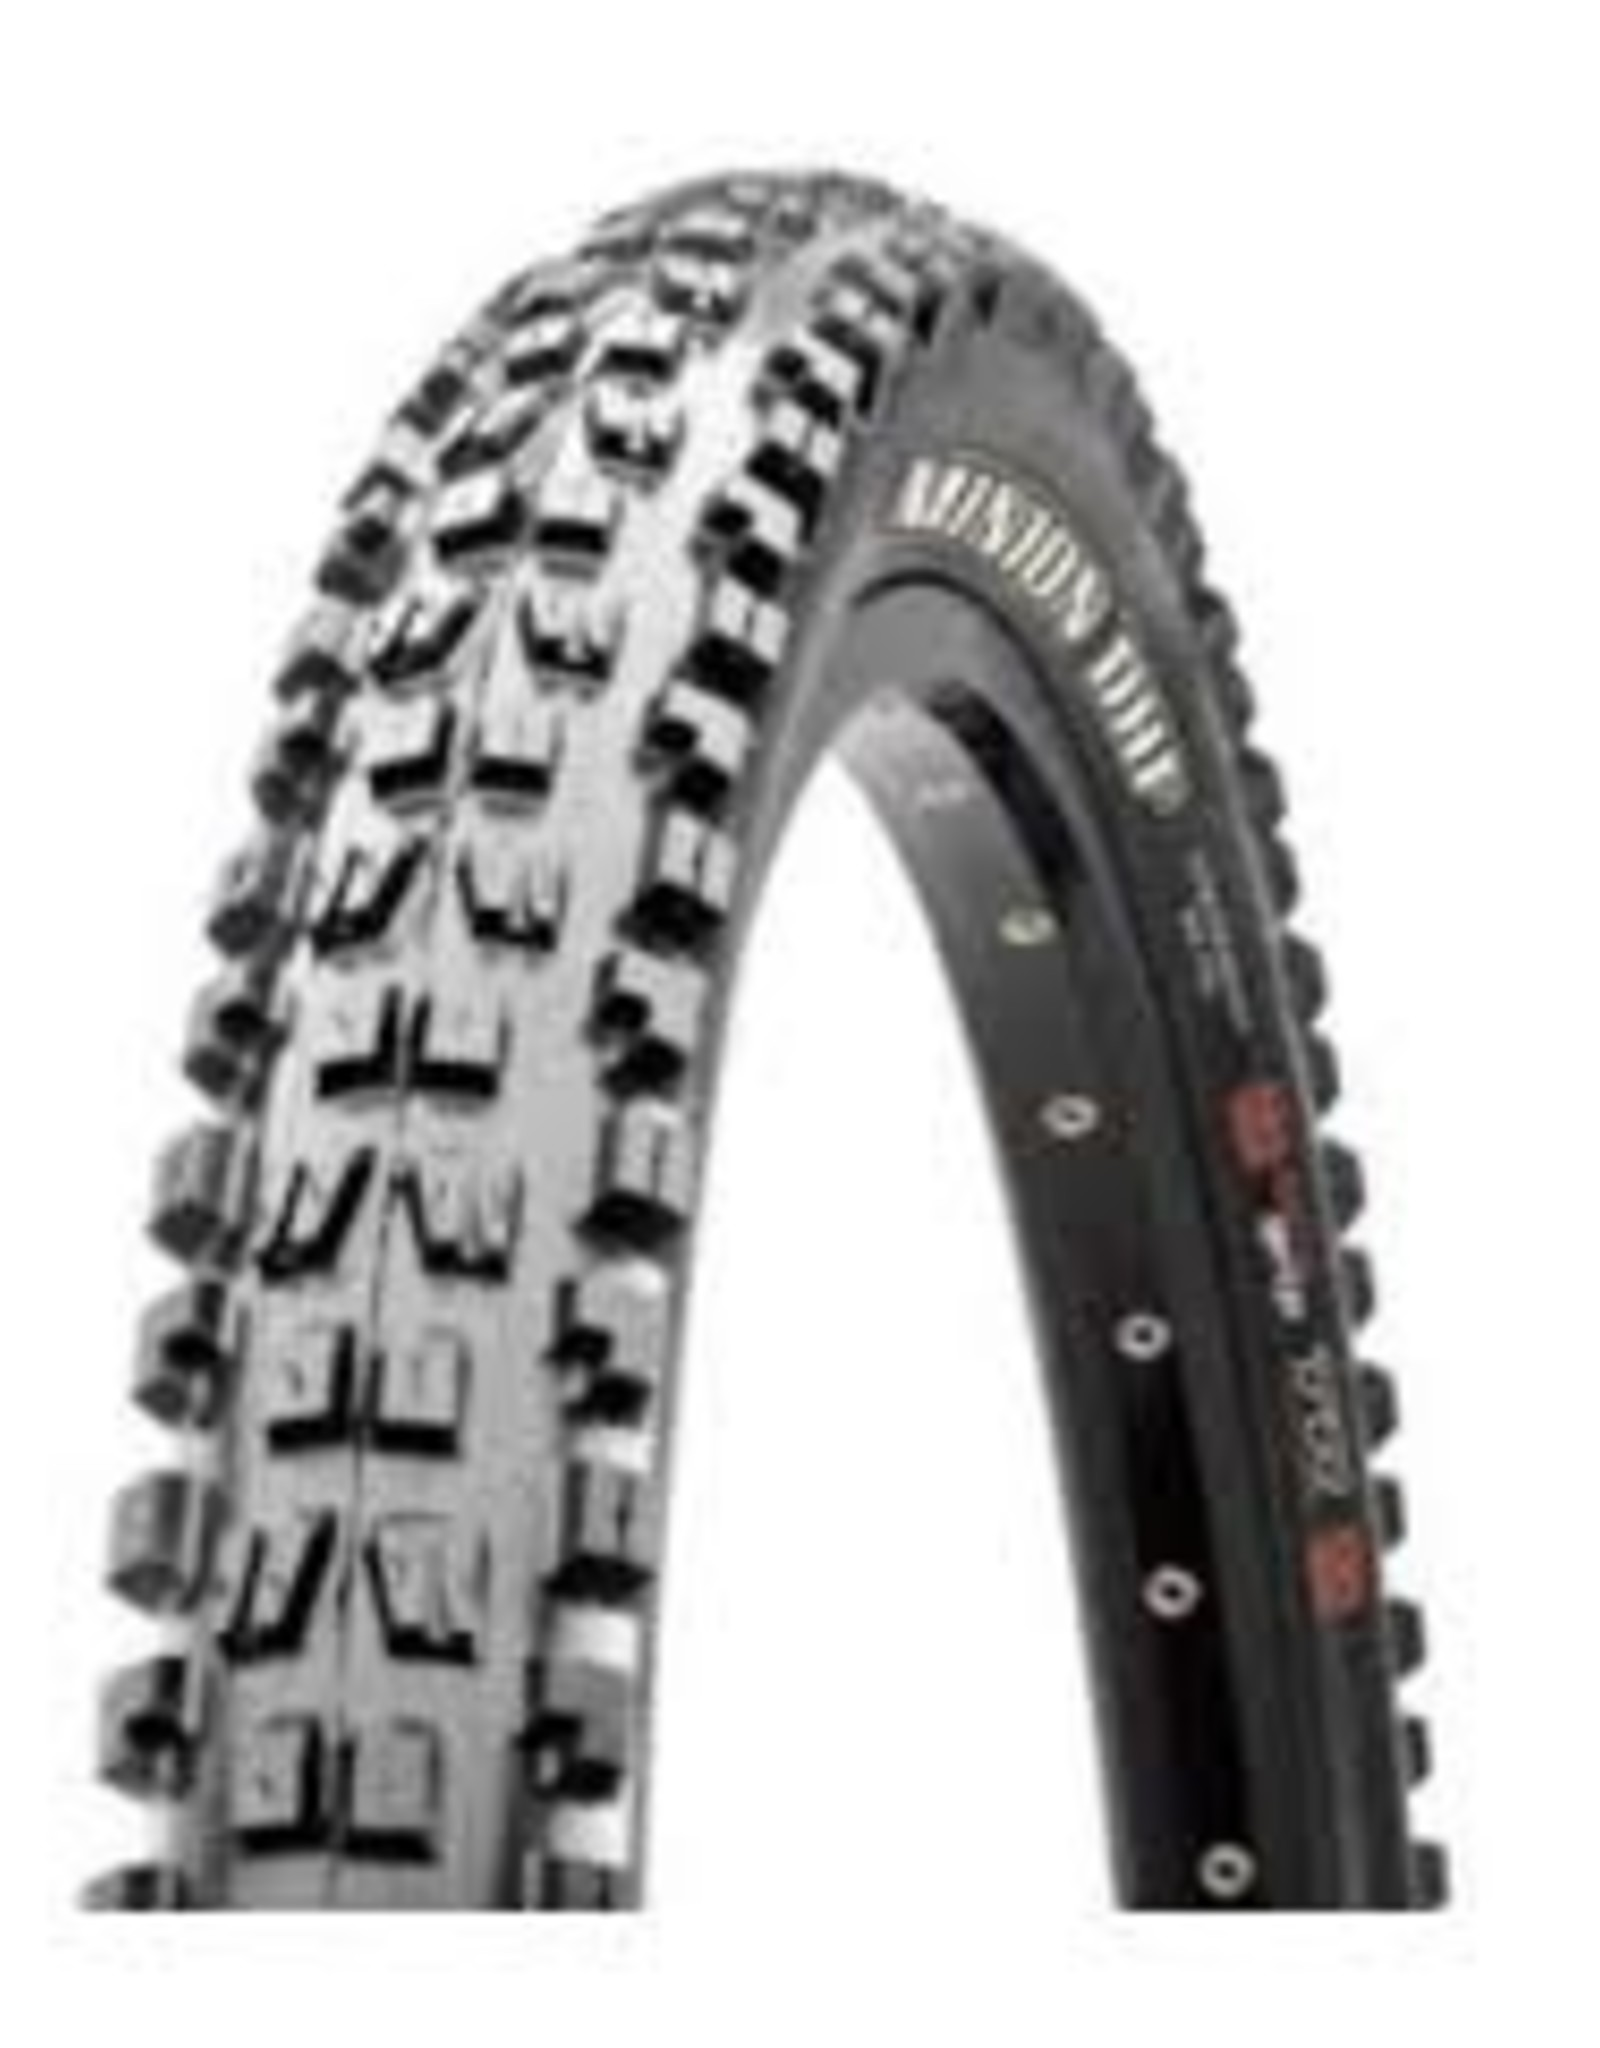 Maxxis MAXXIS DHF EXO 29X2.3